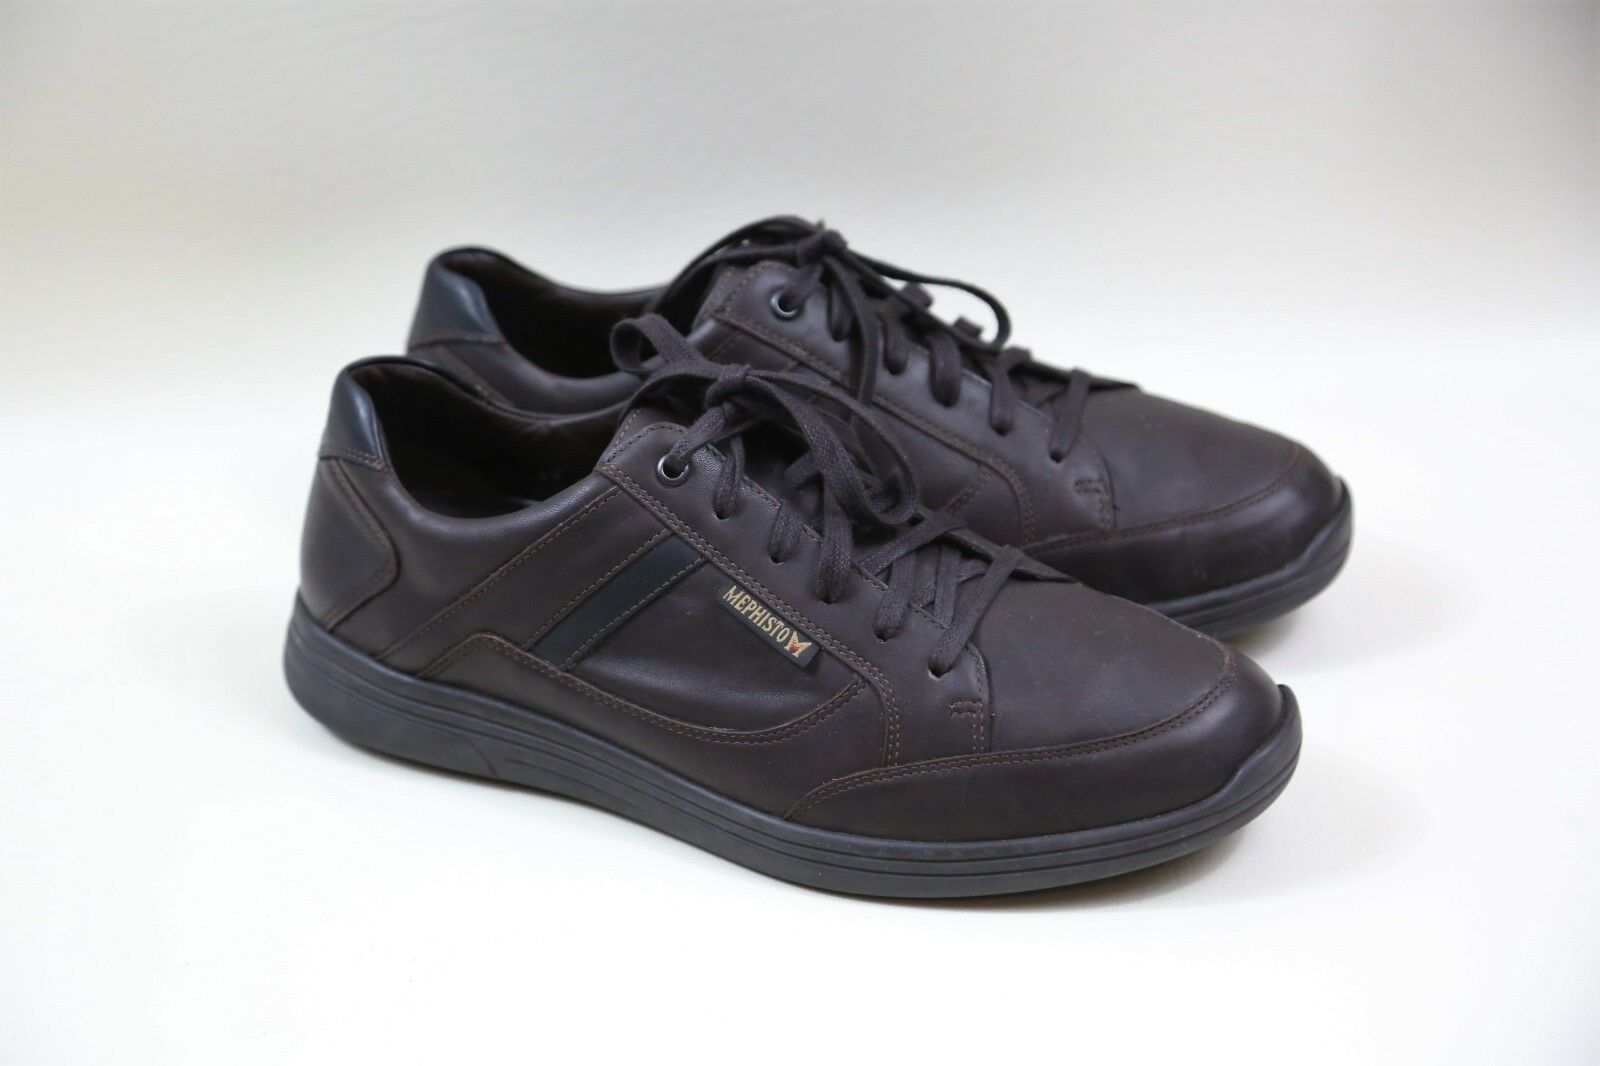 Mephisto Frank Go Wing Sneaker Size 10   RETAIL 299